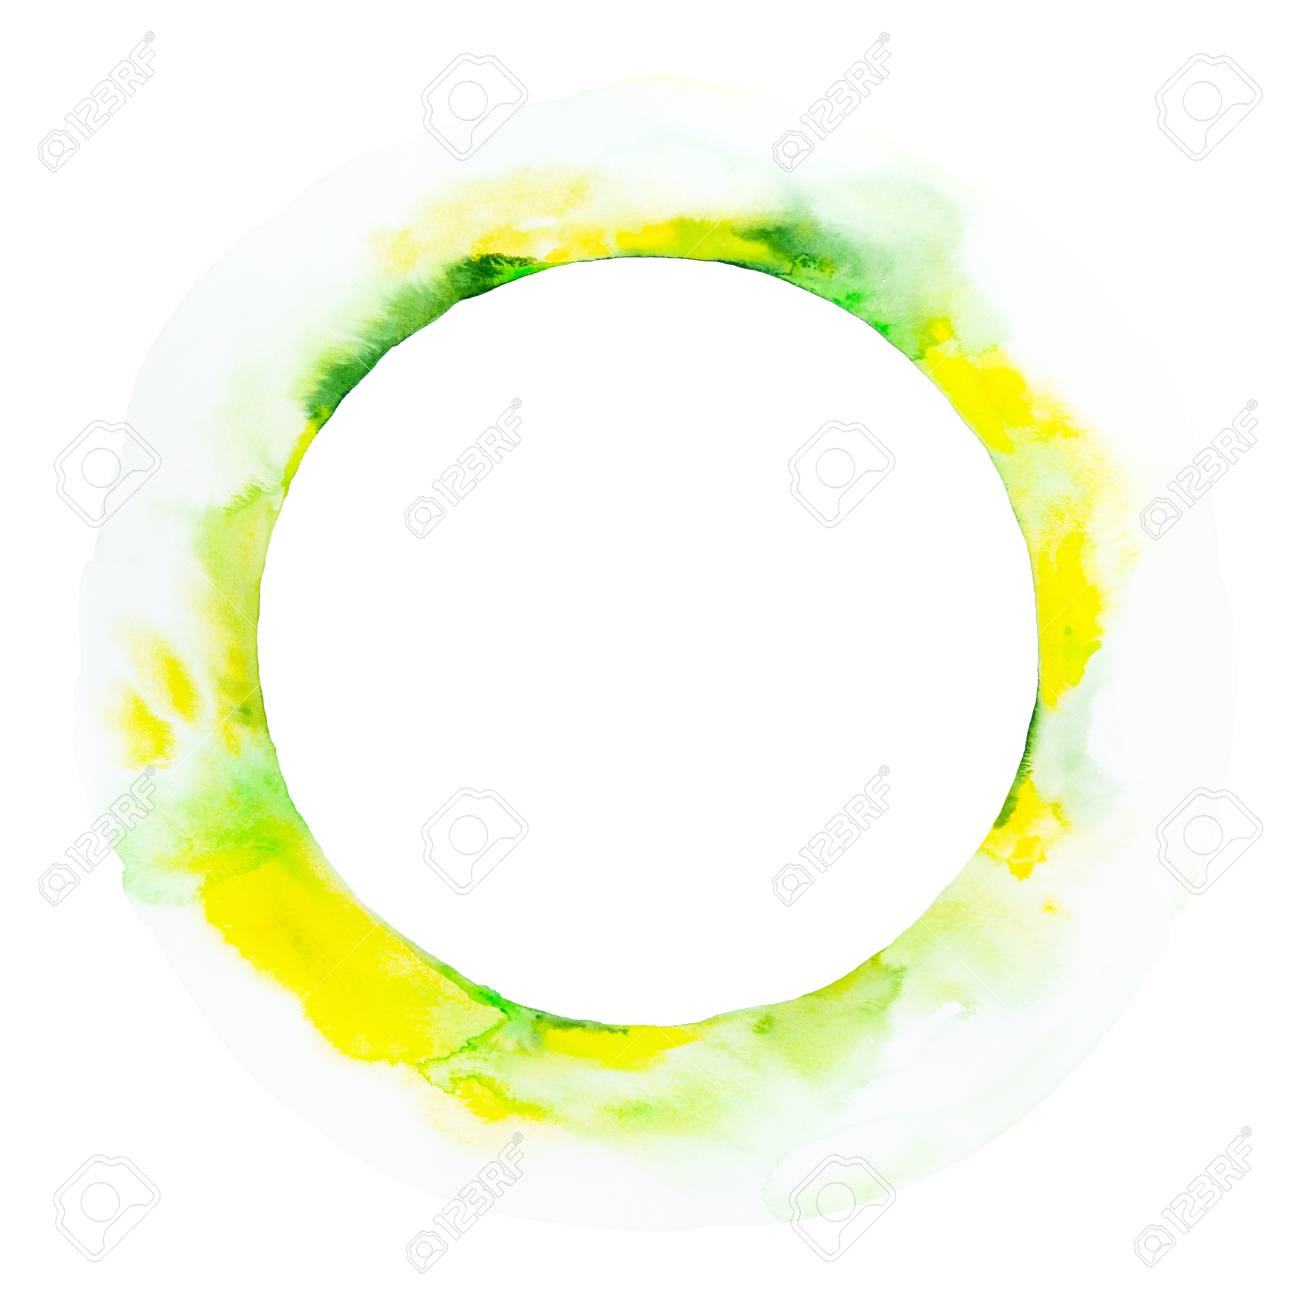 Abstract Yellow And Green Circle Watercolor Background. Hand.. Stock Photo,  Picture And Royalty Free Image. Image 122779091.